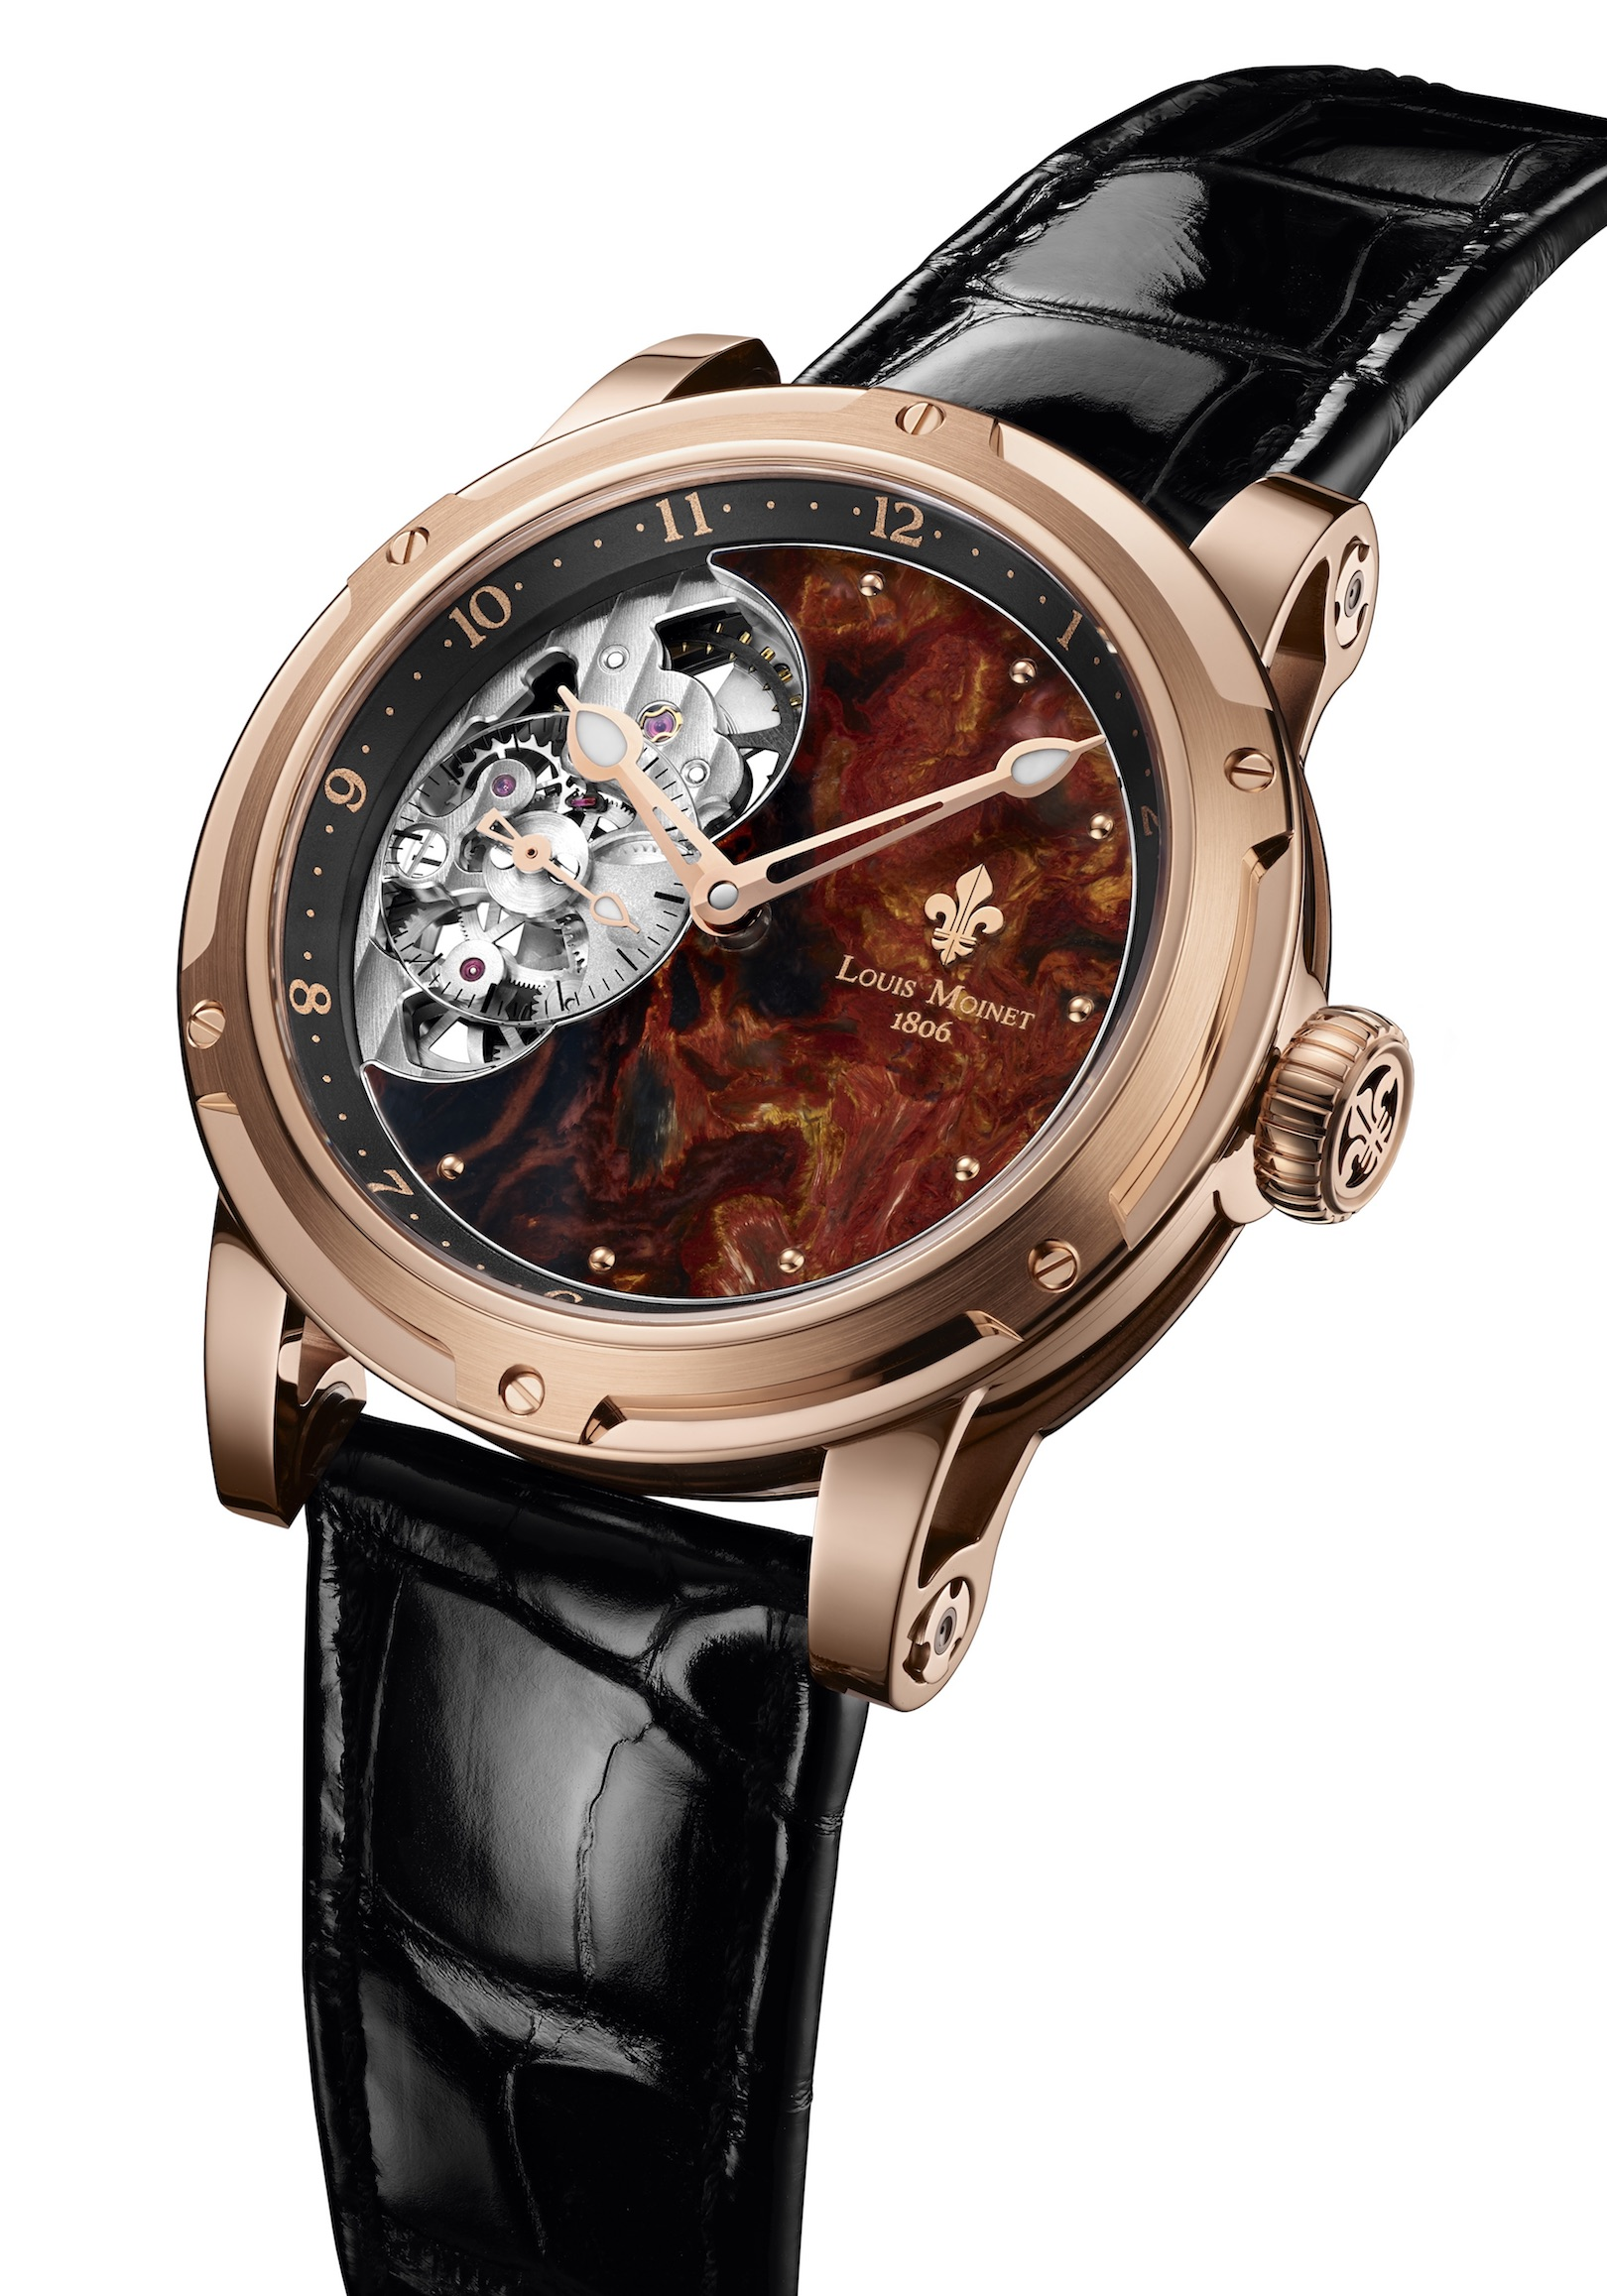 In typical Louis Moinet style, the dials of the new Moscow boutique pieces are made of rare minerals.